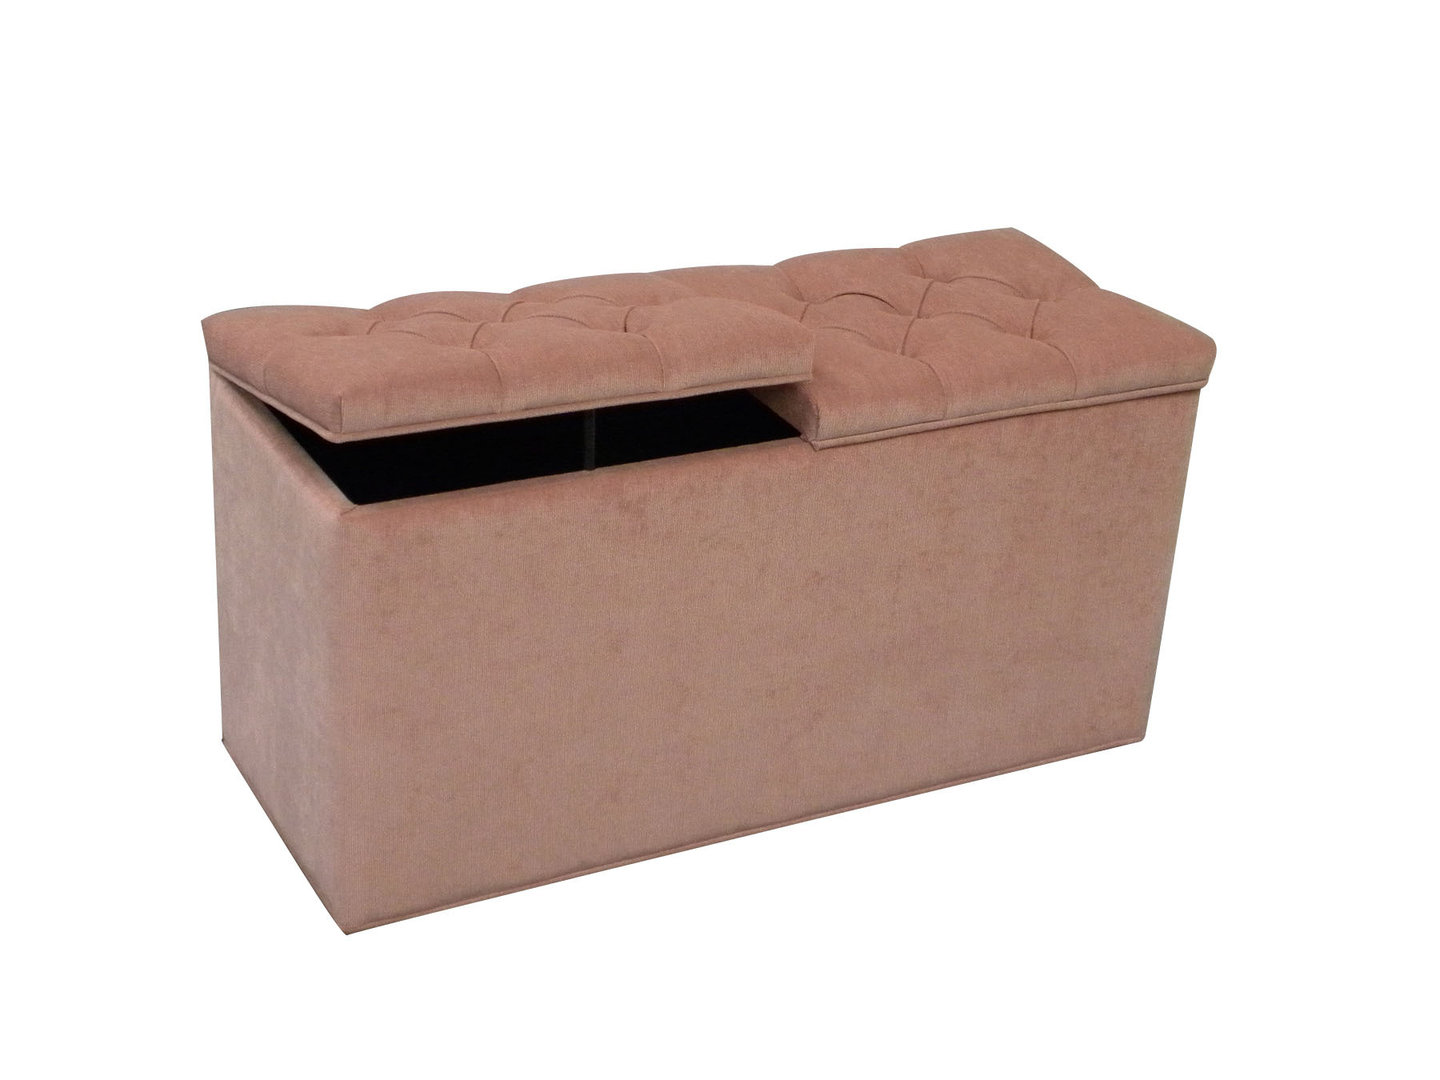 Pleasant Large Ottoman Storage Box Linen Storage Chest In Coral Pink Machost Co Dining Chair Design Ideas Machostcouk